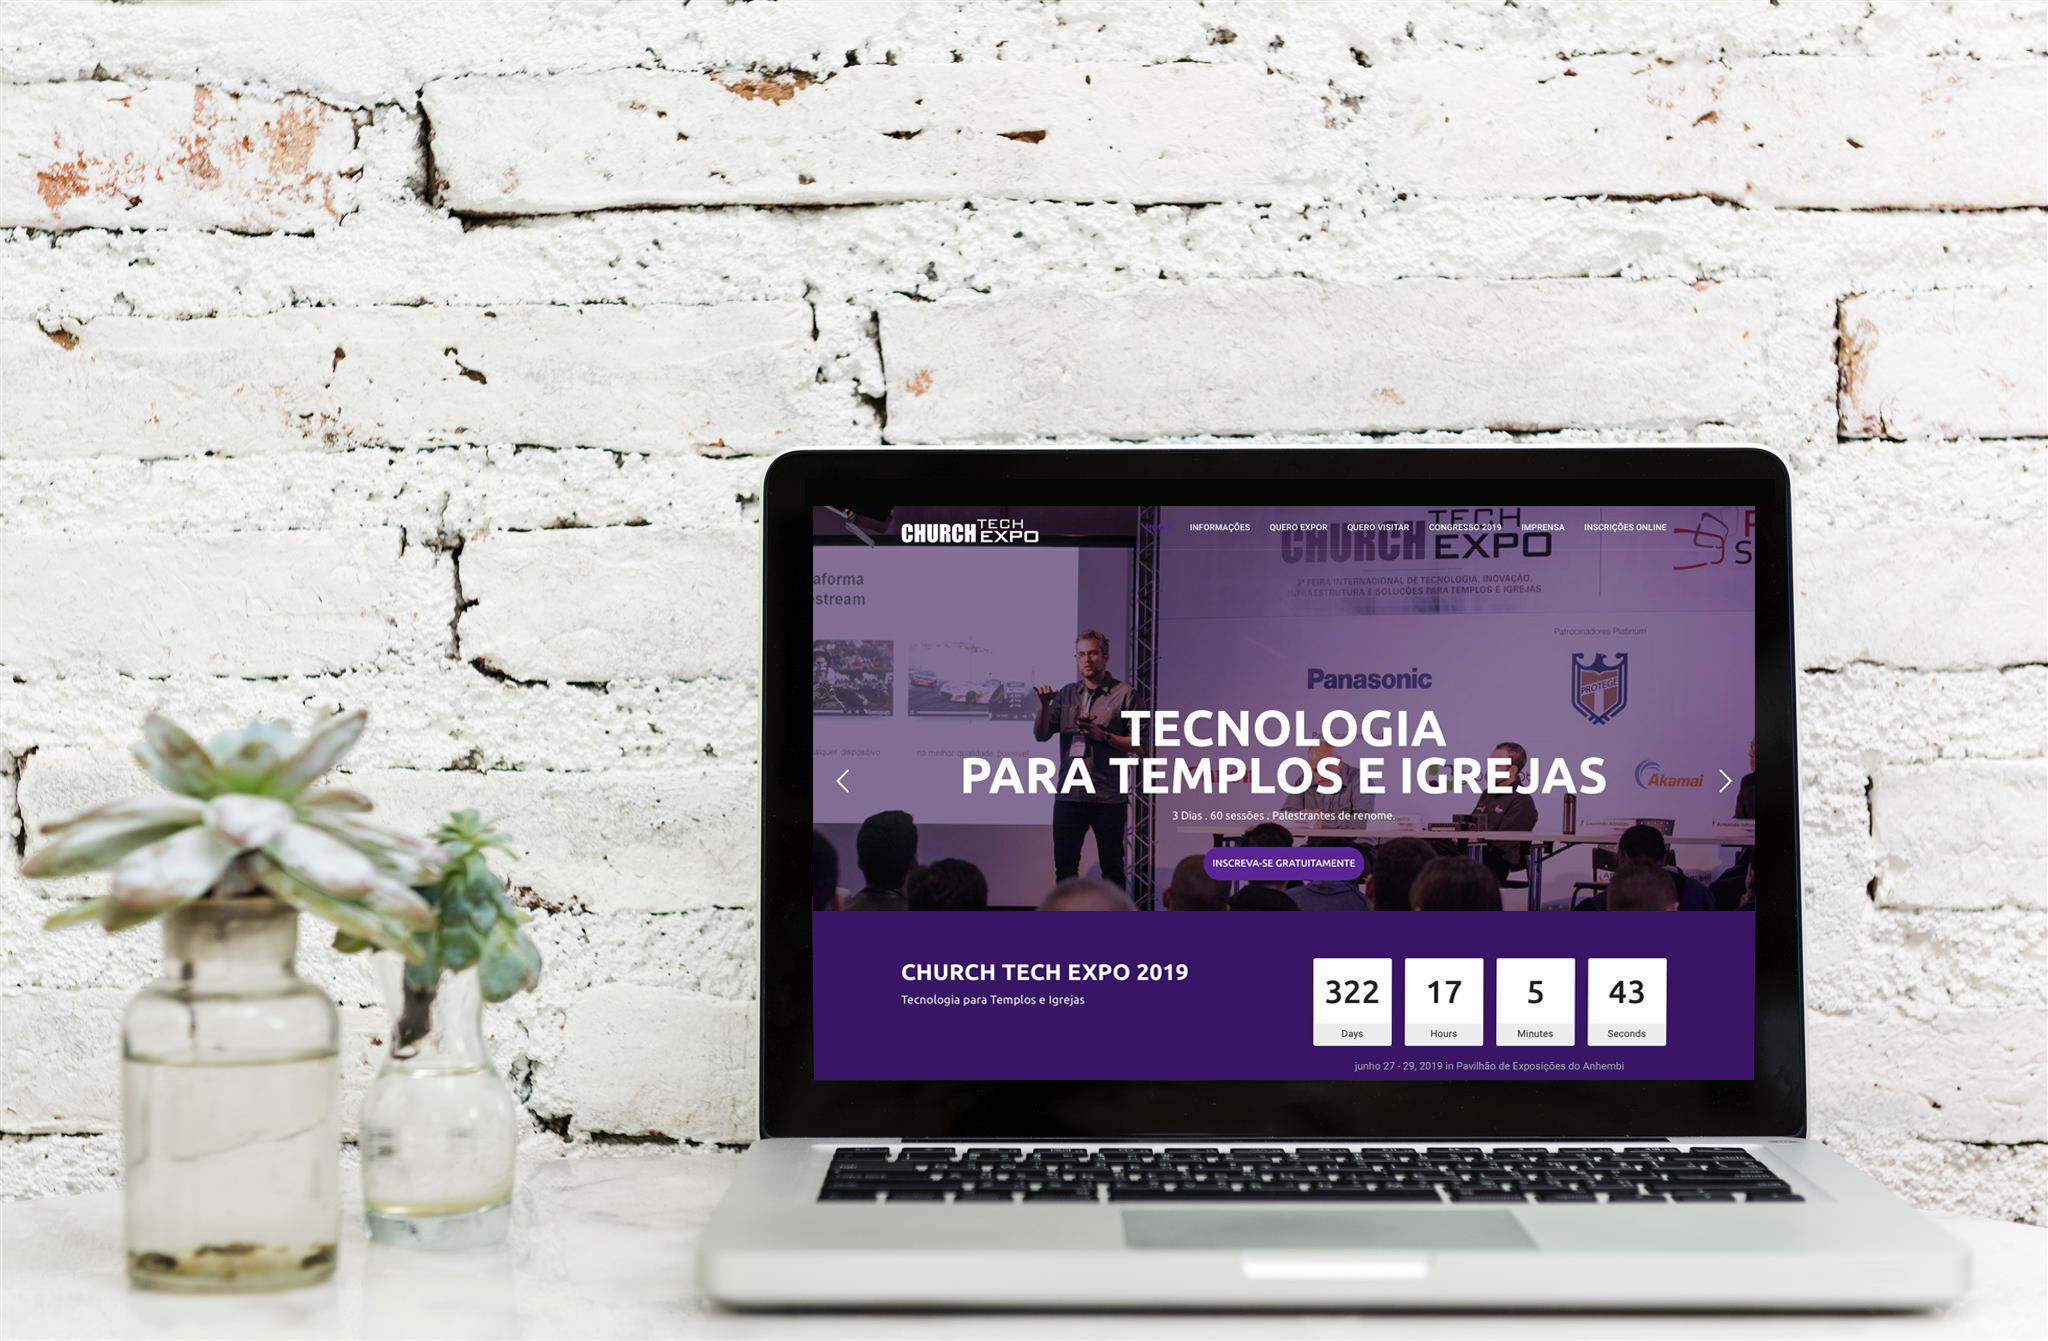 Church Tech Expo lança novo website